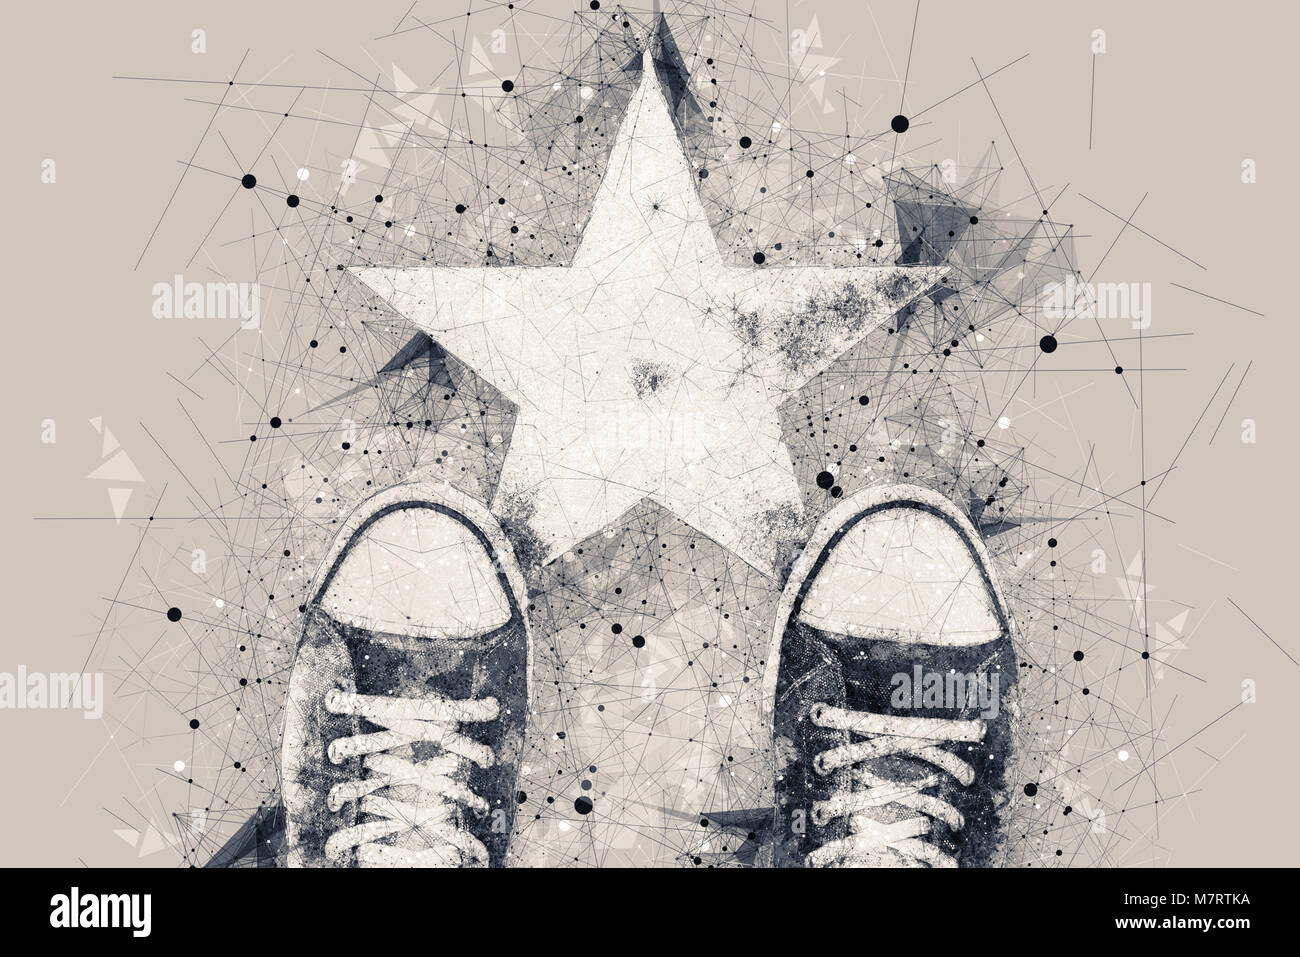 Young person on the road with star shape imprint - talent, vip, prize and award conceptual illustration - Stock Image